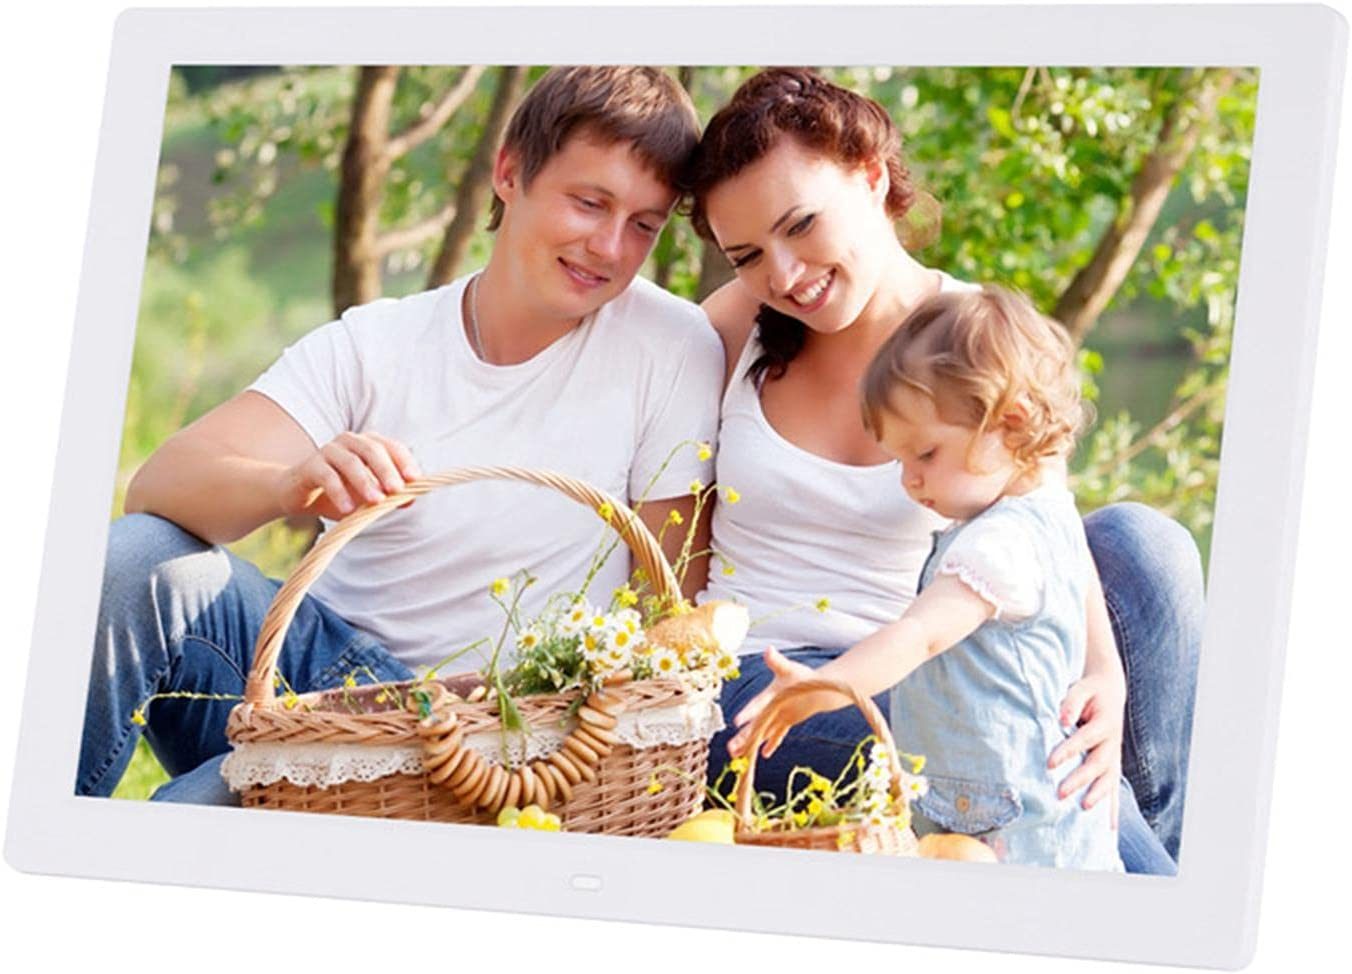 MYRINQ Digital Photo Frame 17 Inch Branded goods Sales results No. 1 Res 1440x900 High with Screen